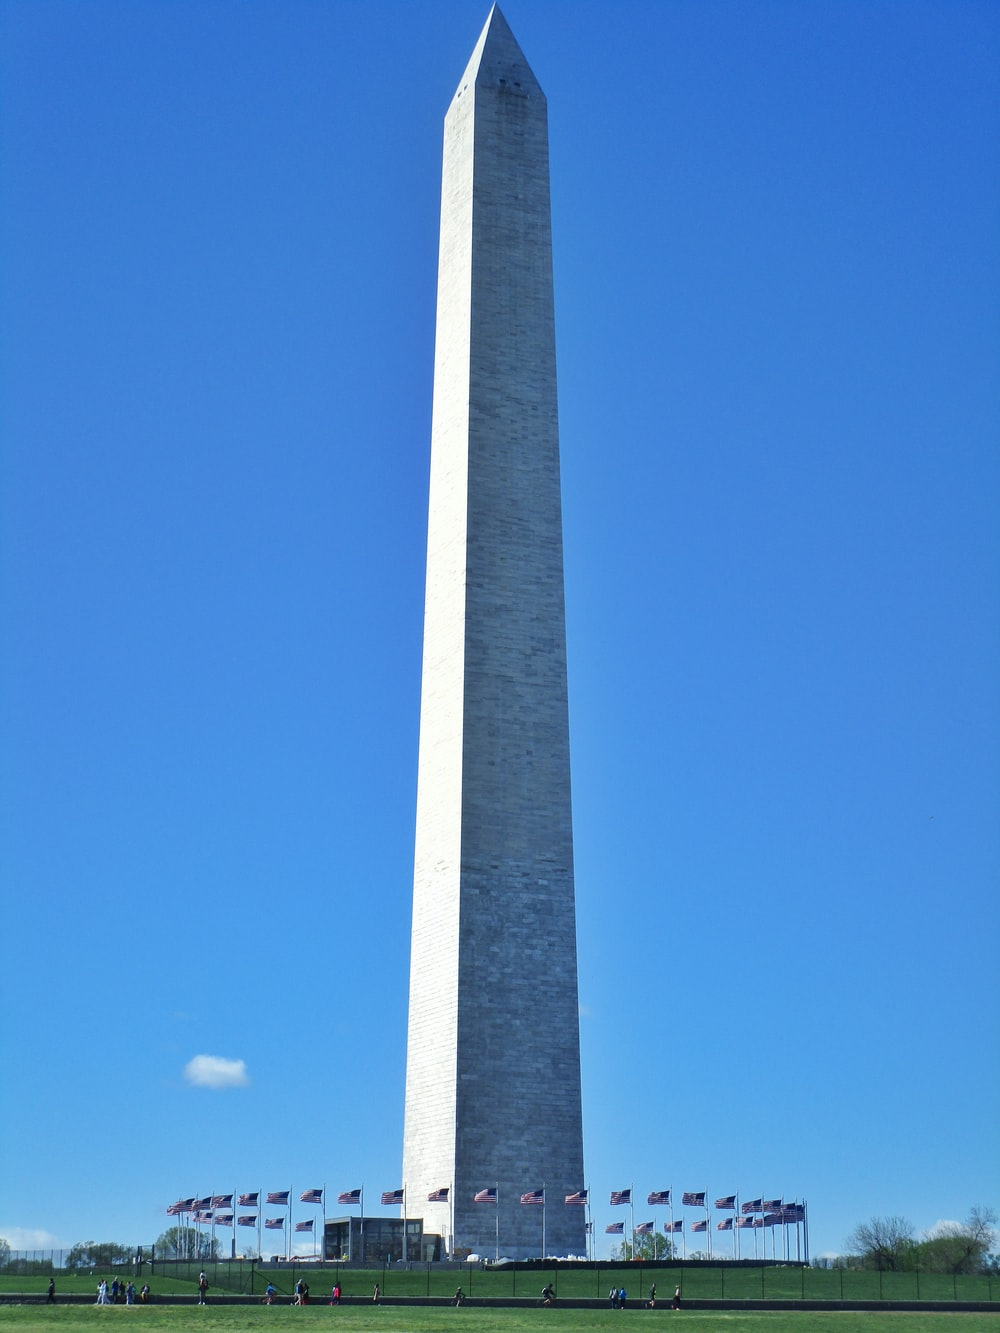 gray concrete tower under blue sky during daytime